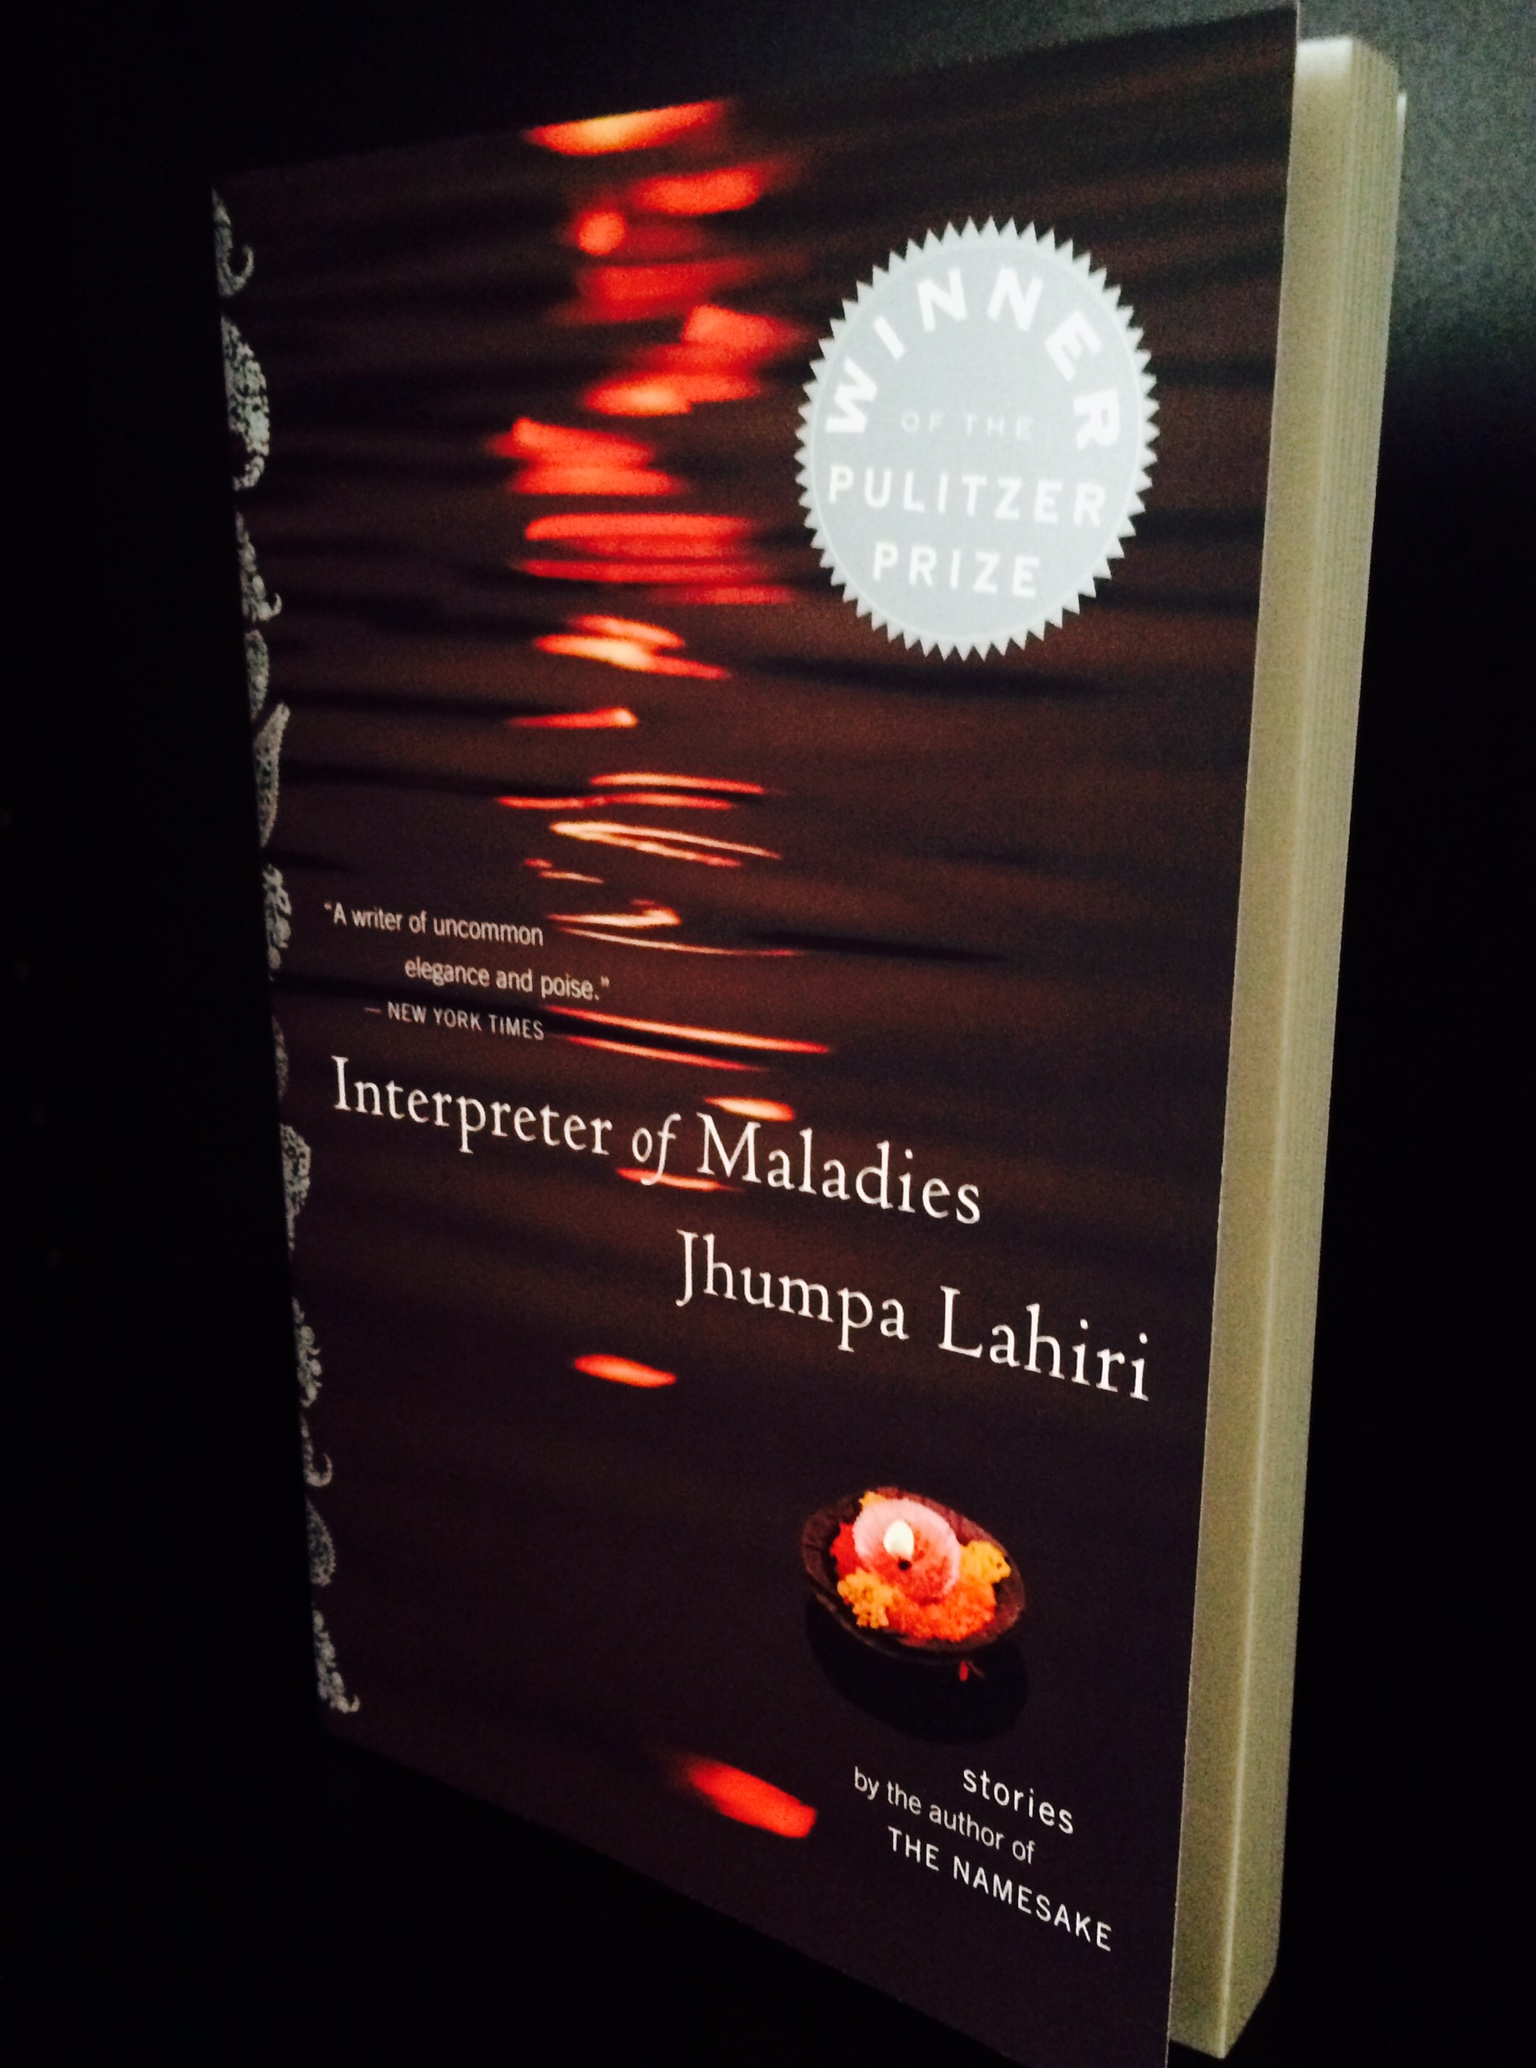 the interpreter of maladies Interpreter of maladies study guide contains a biography of jhumpa lahiri, literature essays, quiz questions, major themes, characters, and a full summary and analysis of each of the short stories.